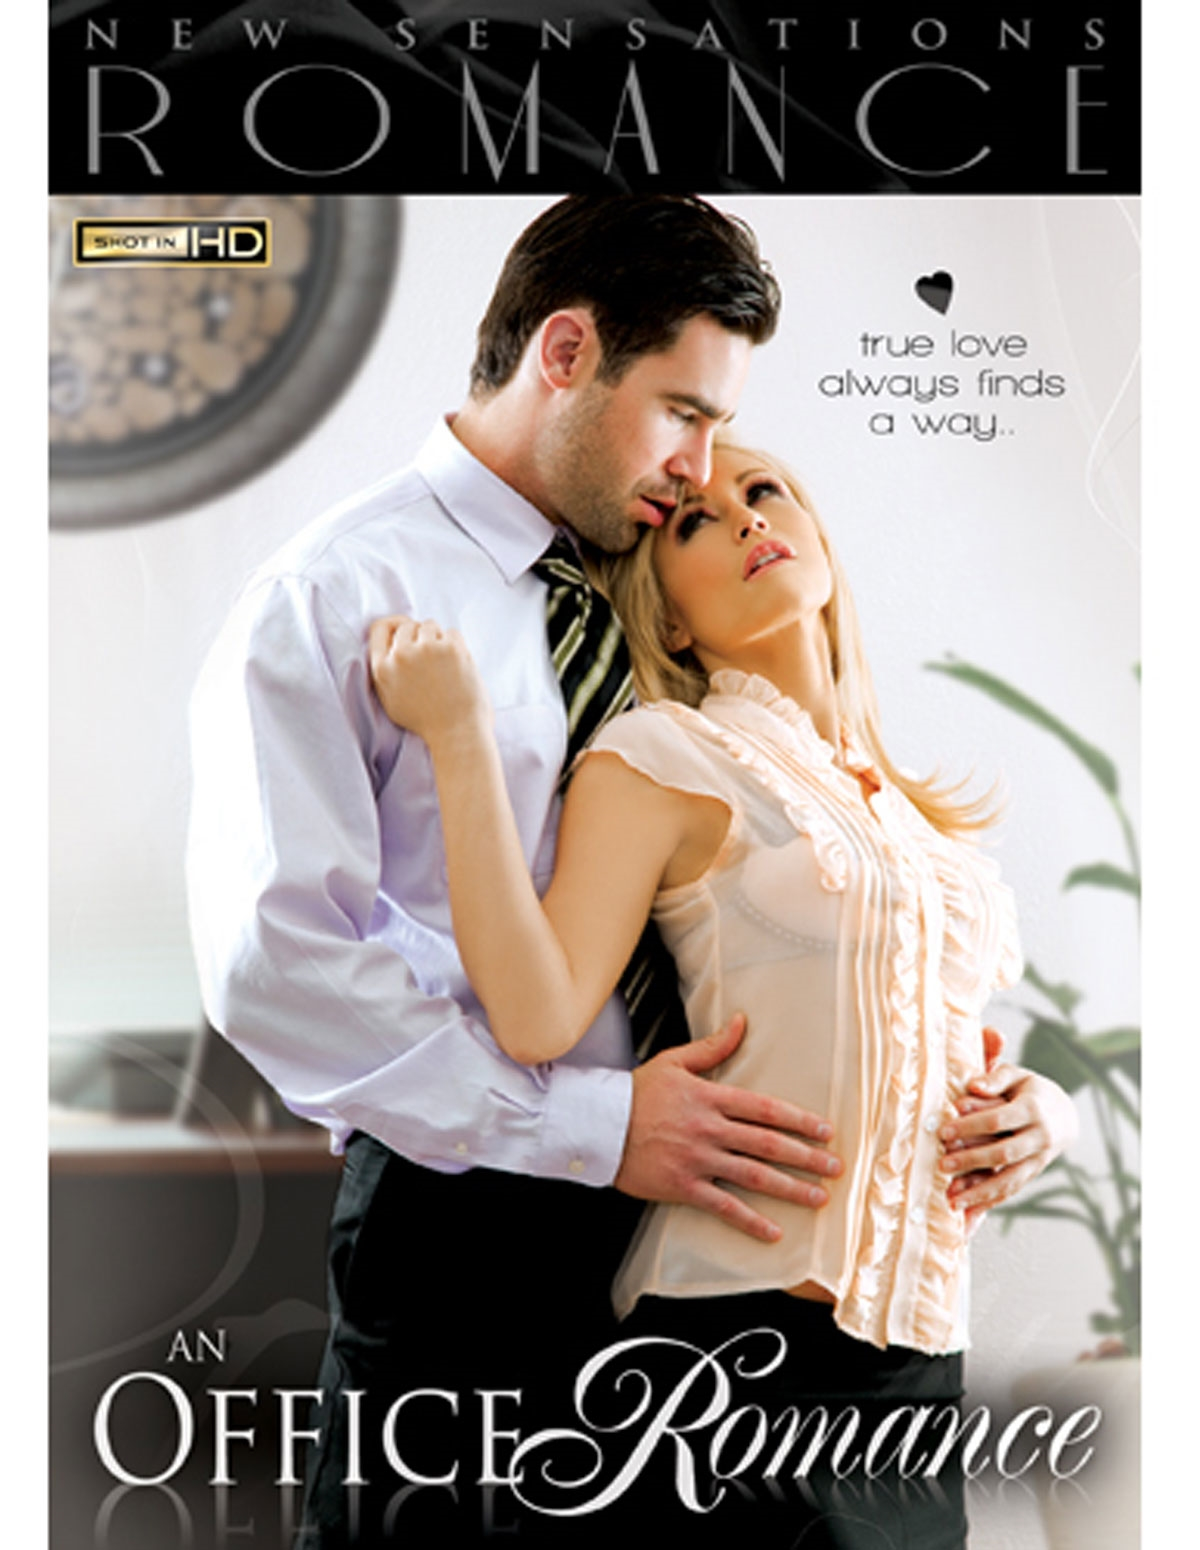 An Office Romance Dvd